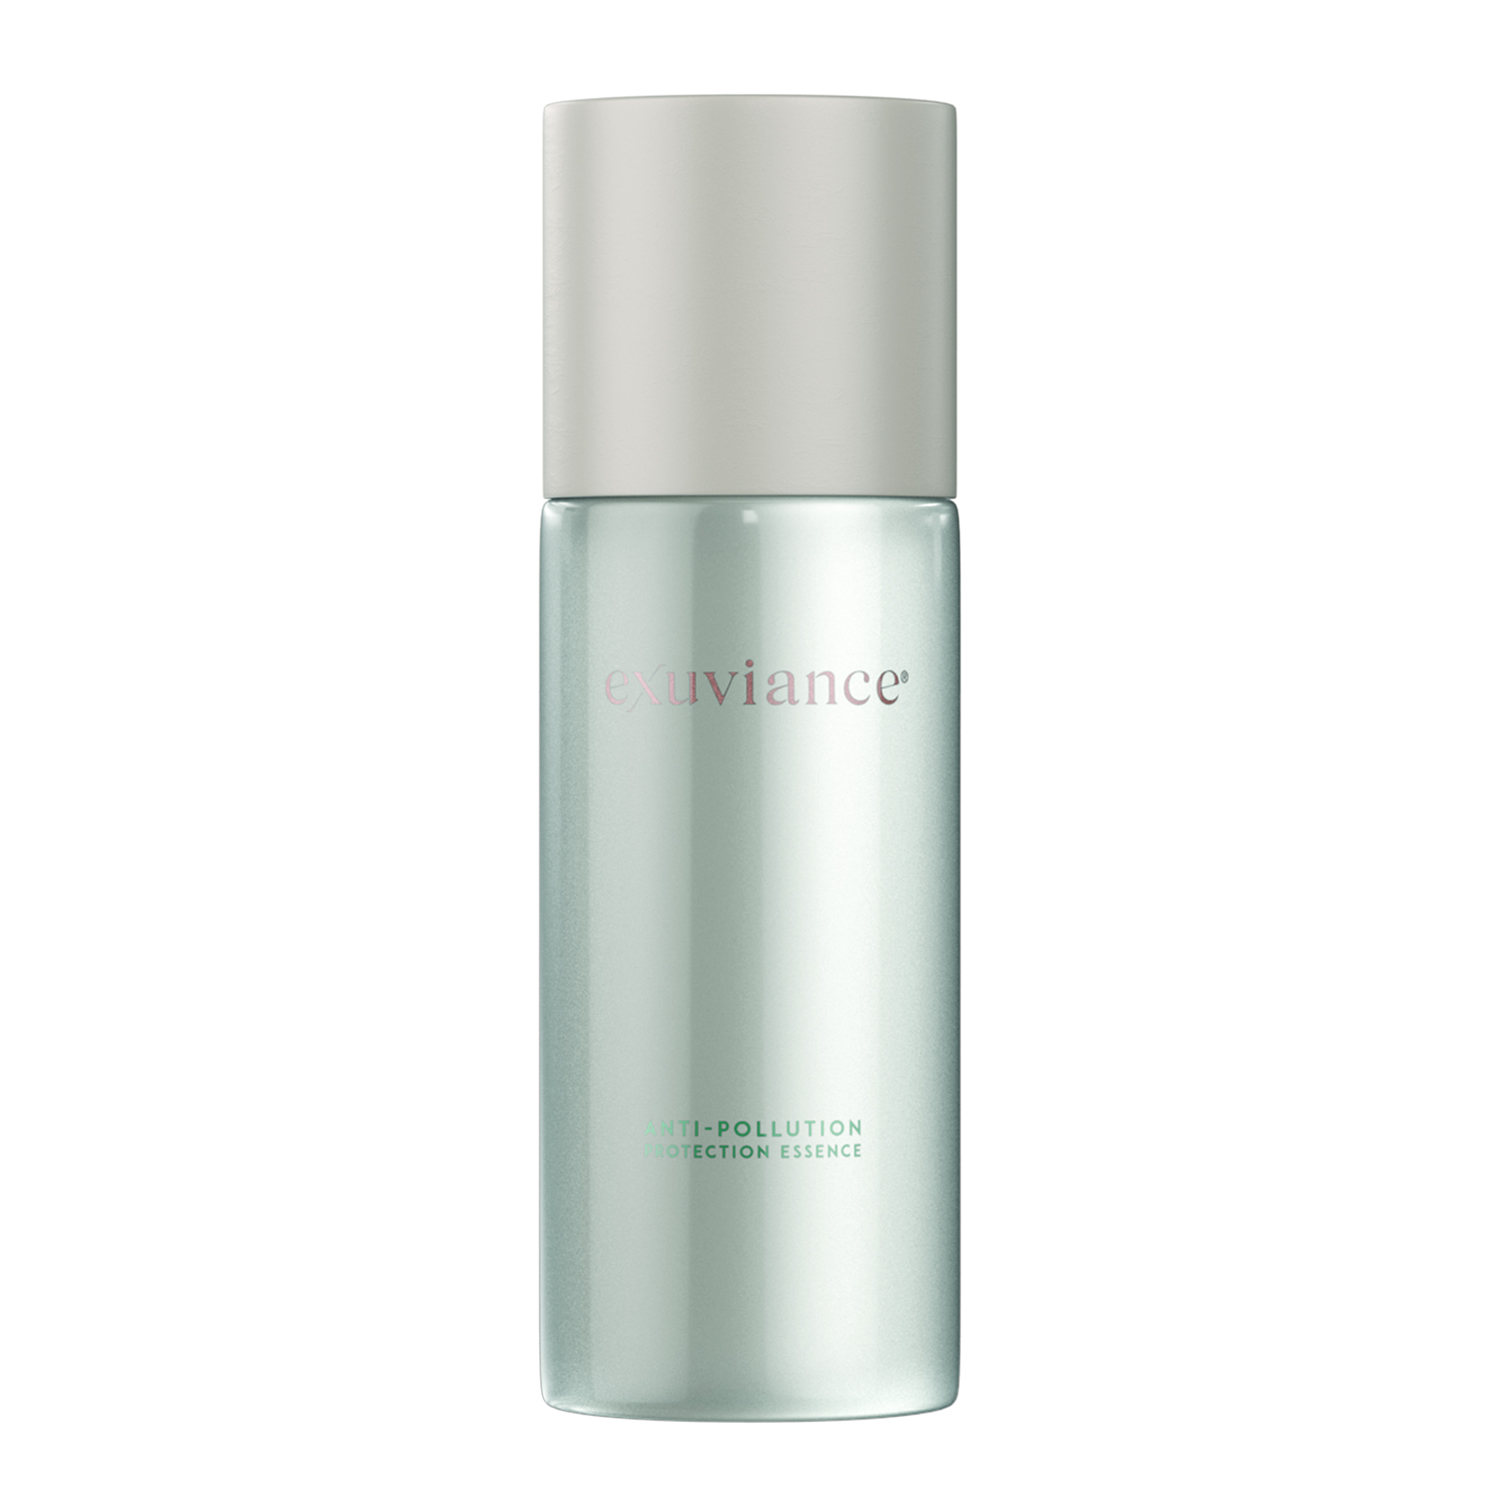 Exuviance ANTI-POLLUTION PROTECTION ESSENCE (formerly Priobiotic Lysate Anti-Pollution Essence) (100 ml / 3.4 fl oz)